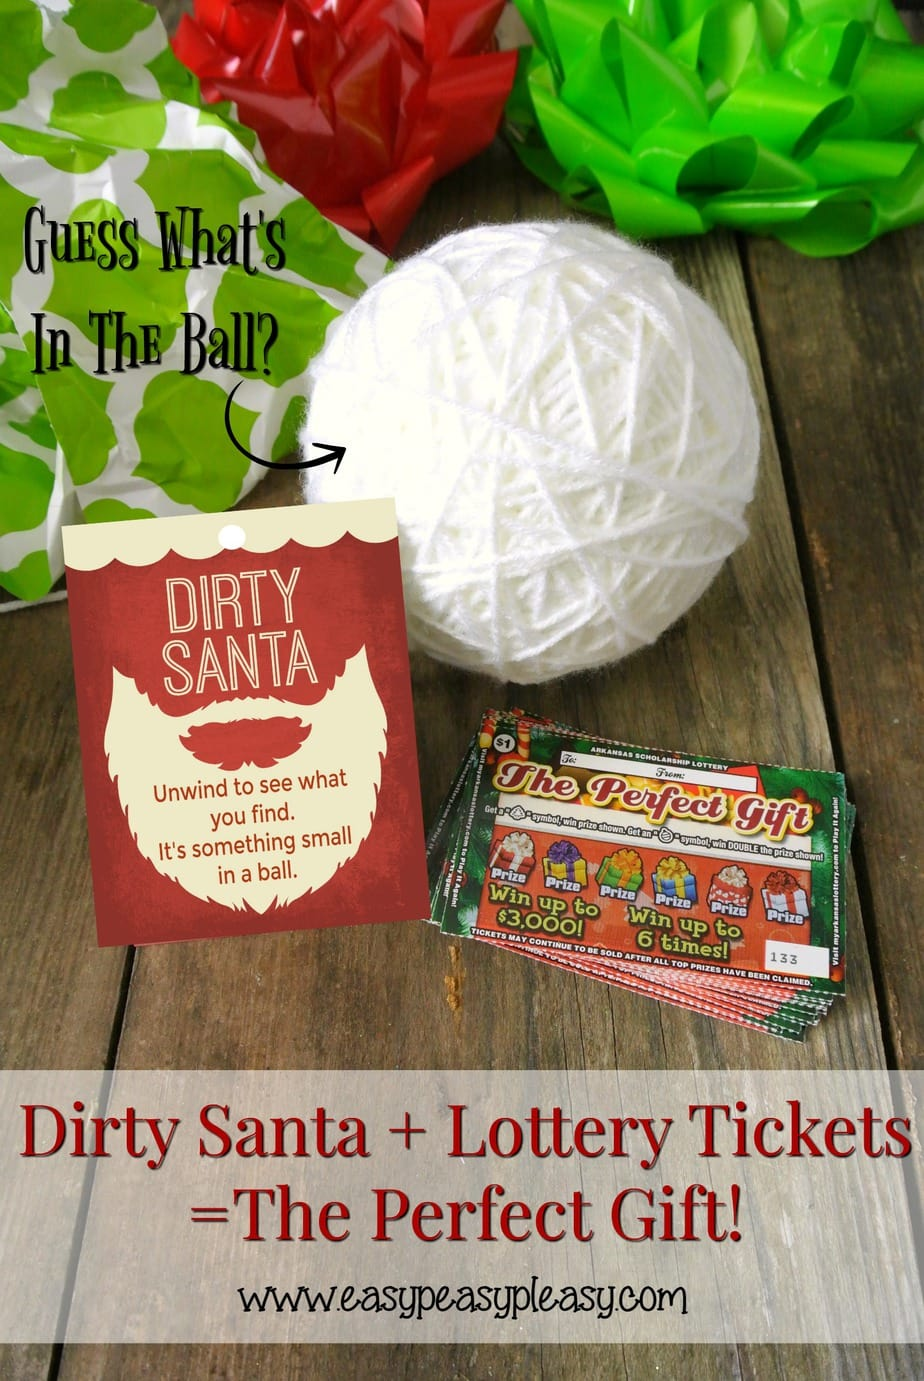 Dirty Santa Gift Ideas using Lottery Tickets plus free printable gifts tags to match!